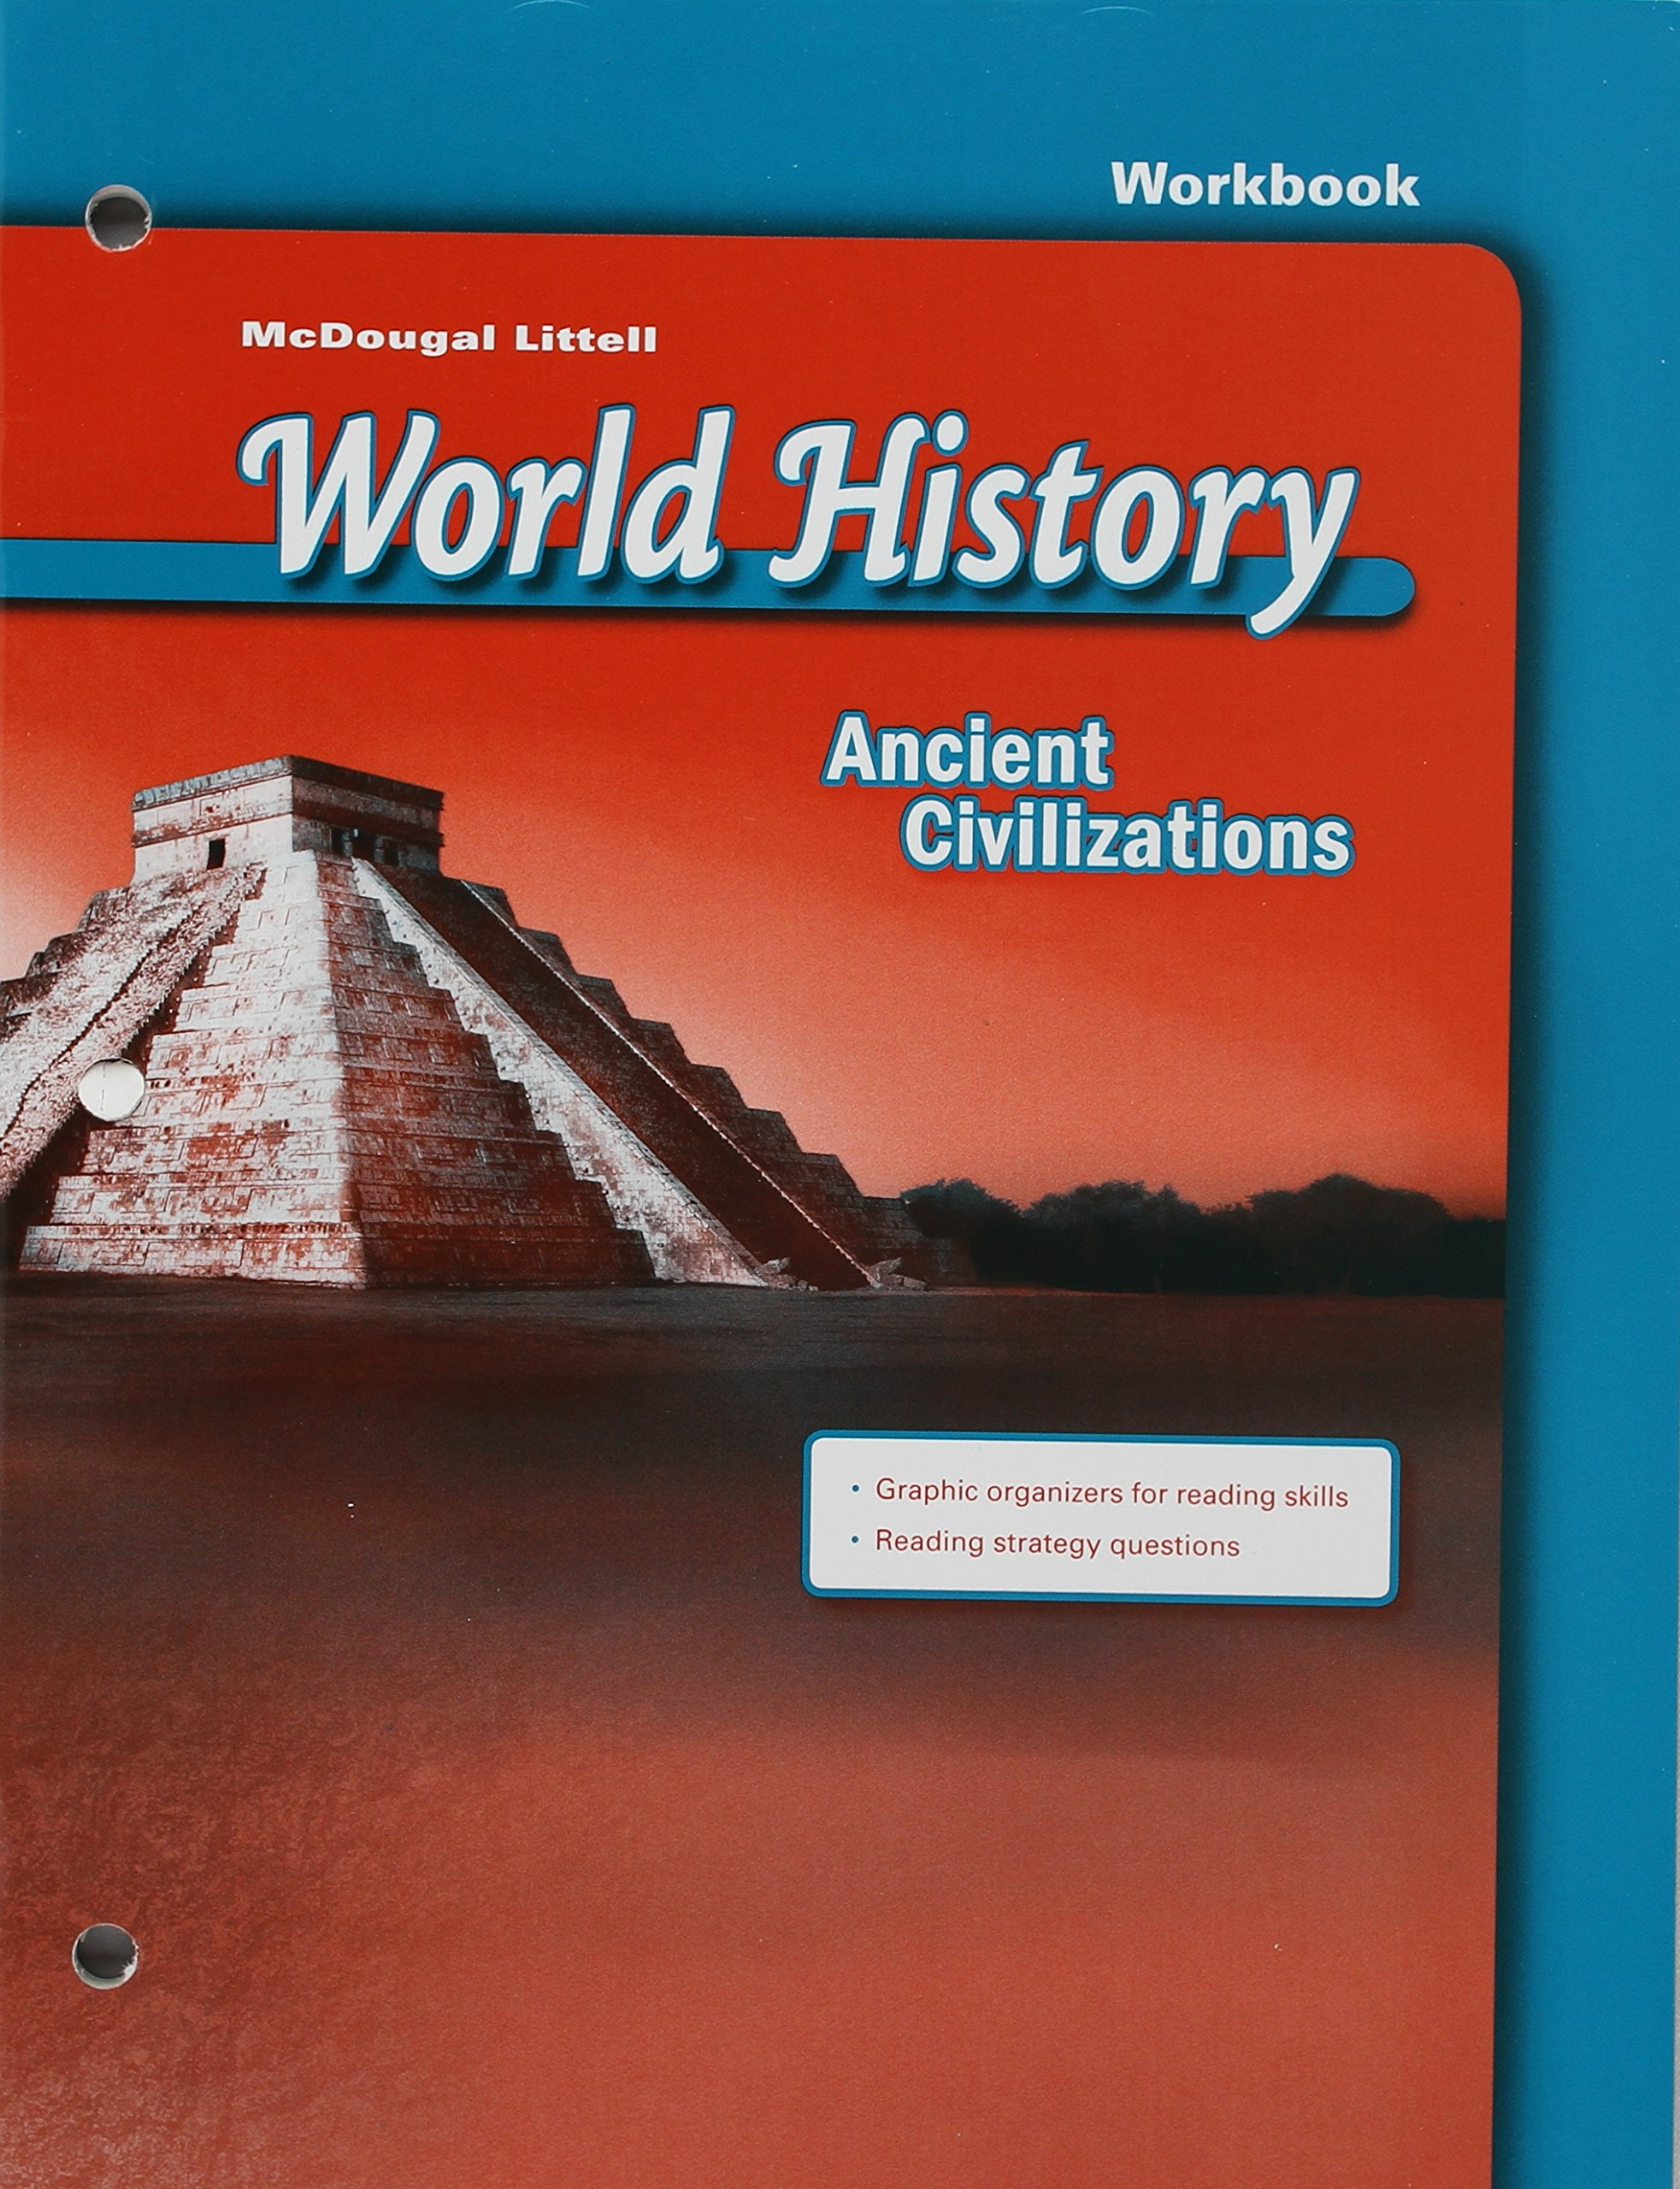 Holt Mcdougal World History Textbook Pdf 6th Grade